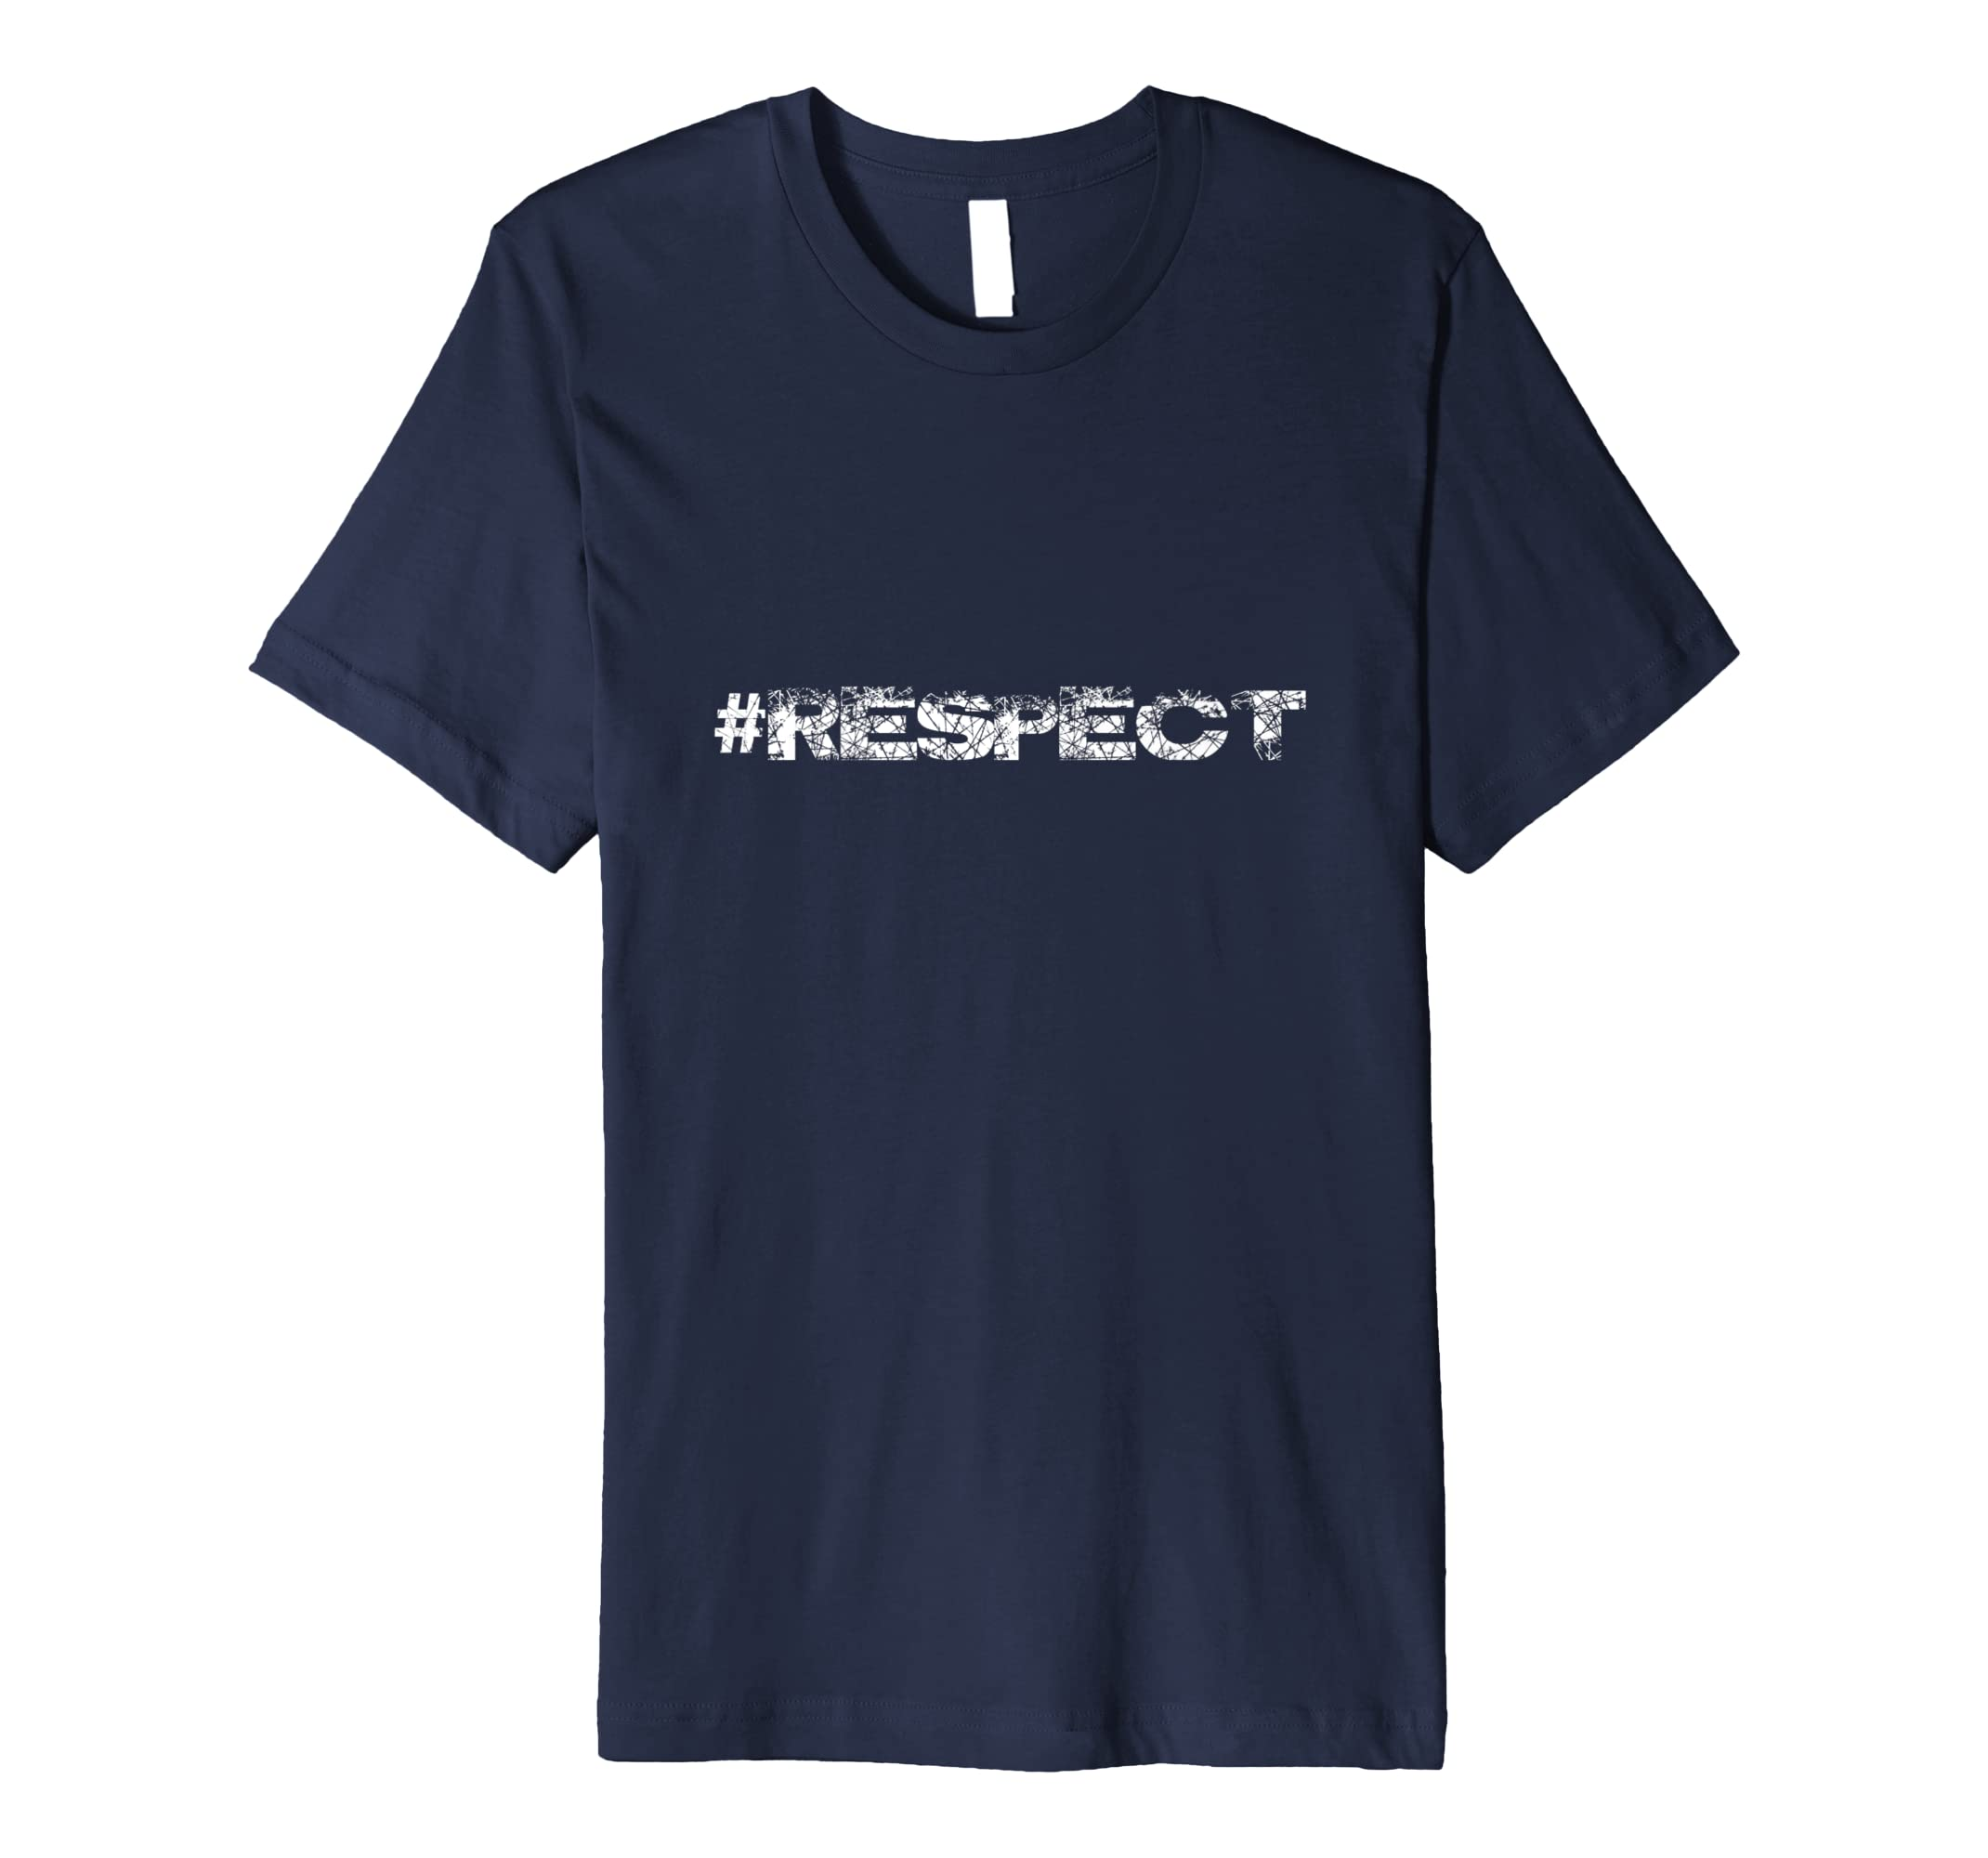 T SHIRT NEW DESIGN SIMPLE 2018 2019 FOR MAN WOMEN AND BOYS-azvn